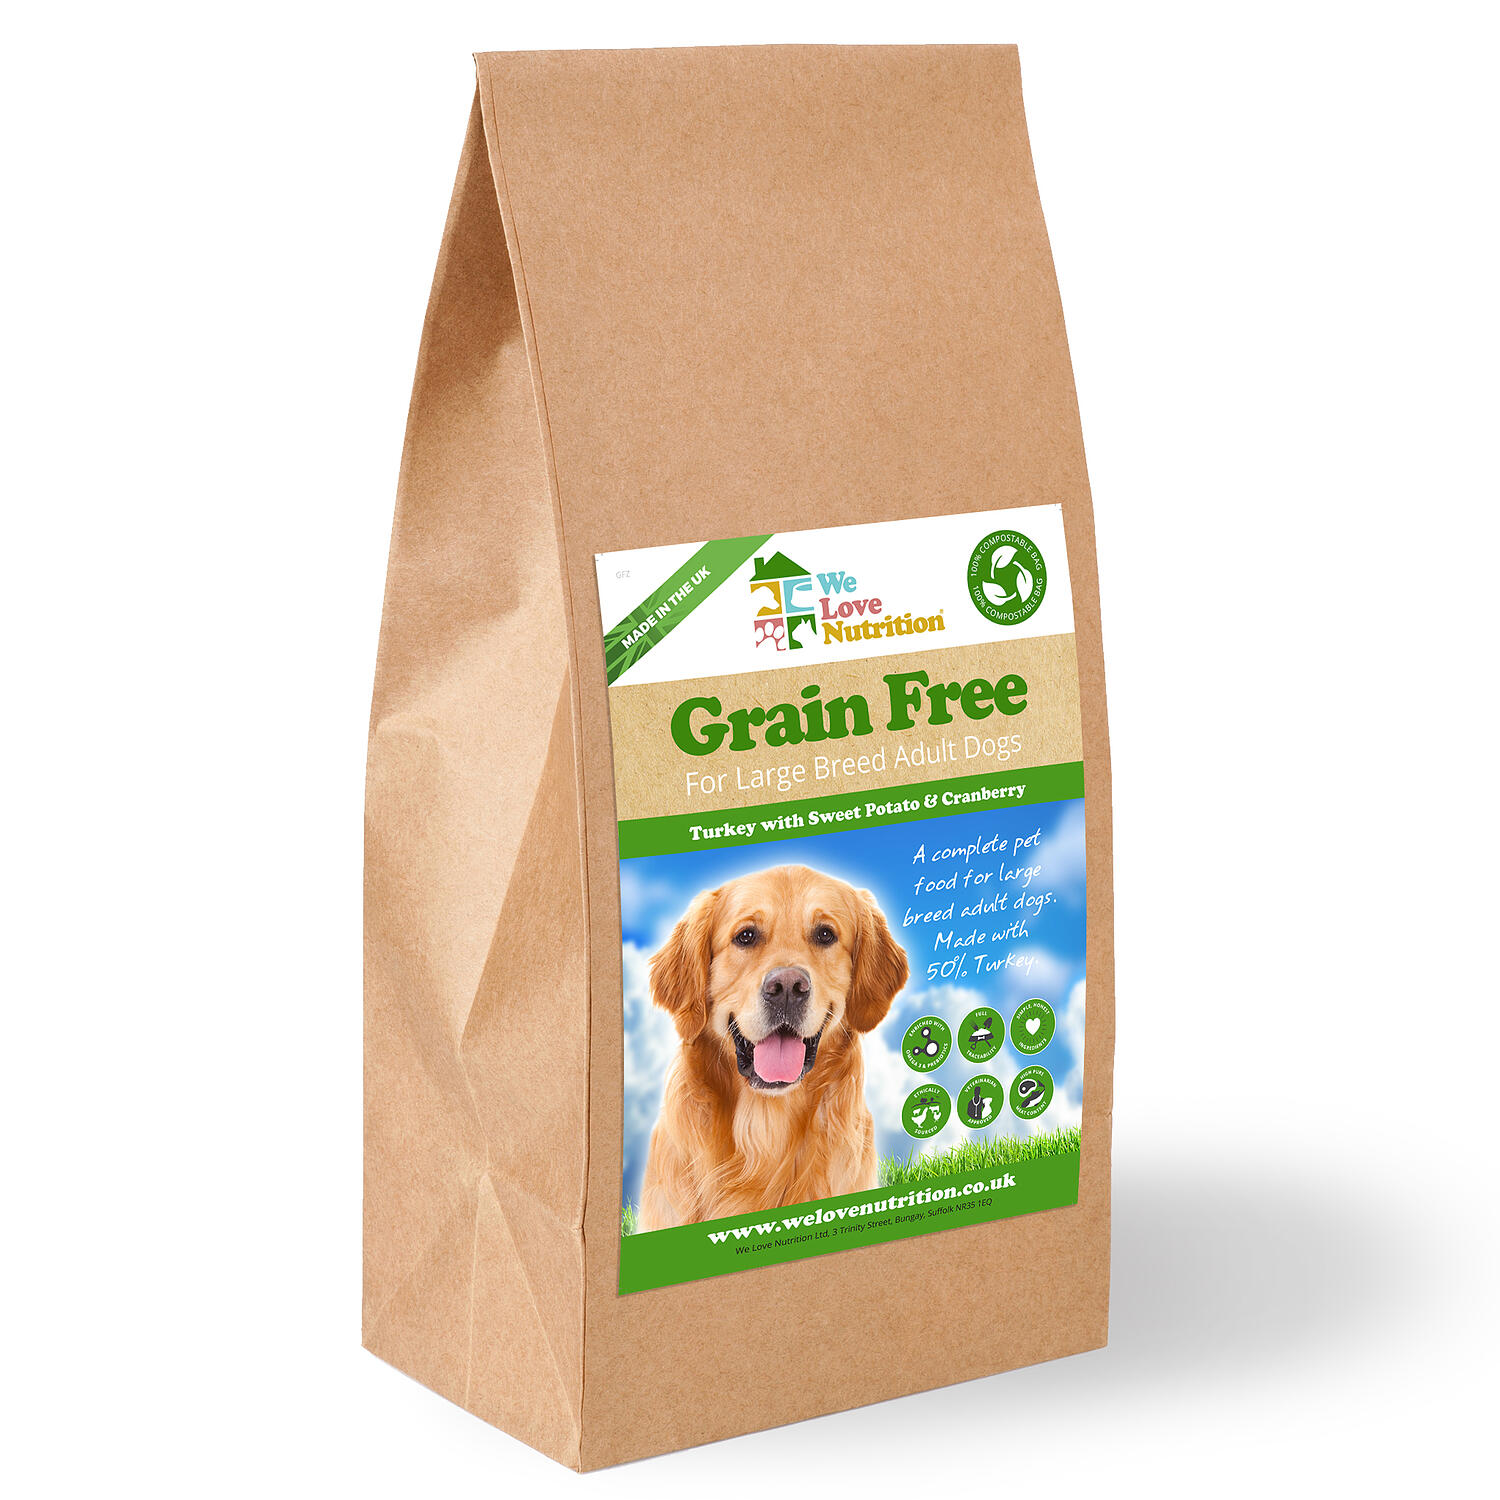 GFZ-Large-Breed-Adult-Bag